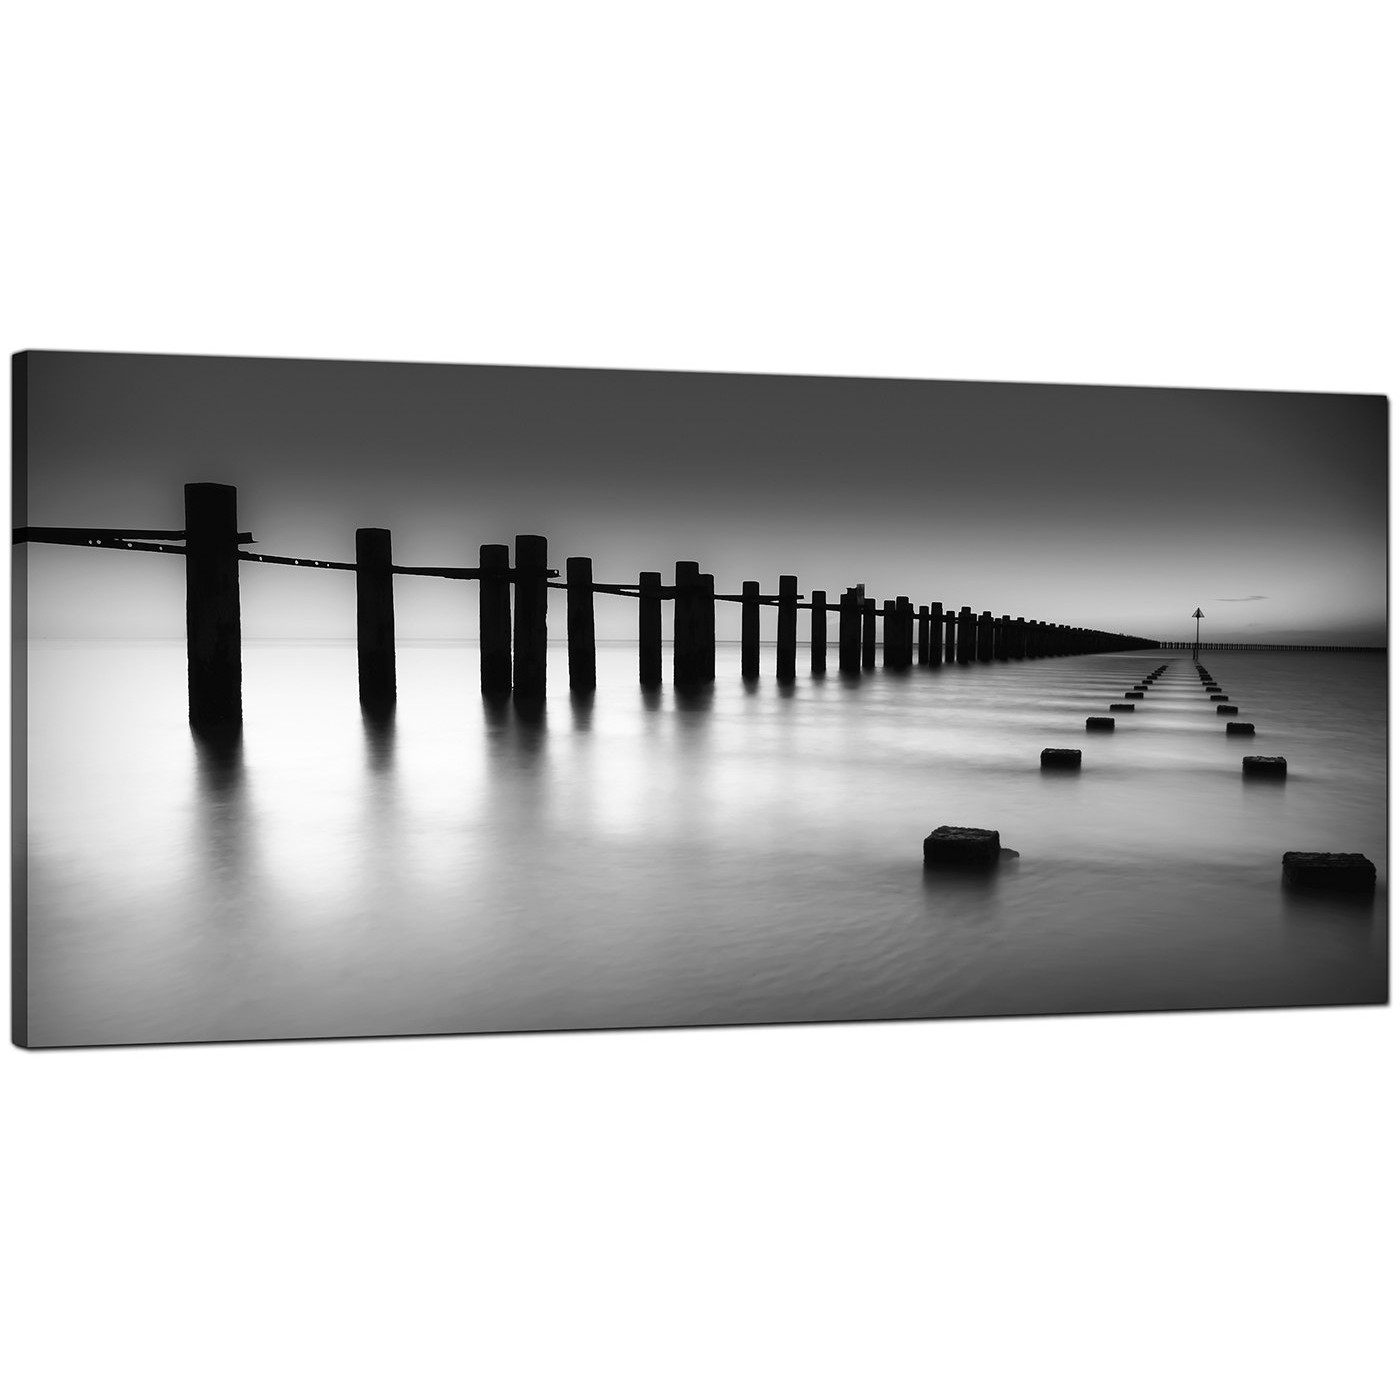 Modern Black And White Canvas Art Of The Sea With Regard To Current Black And White Photography Canvas Wall Art (Gallery 10 of 15)